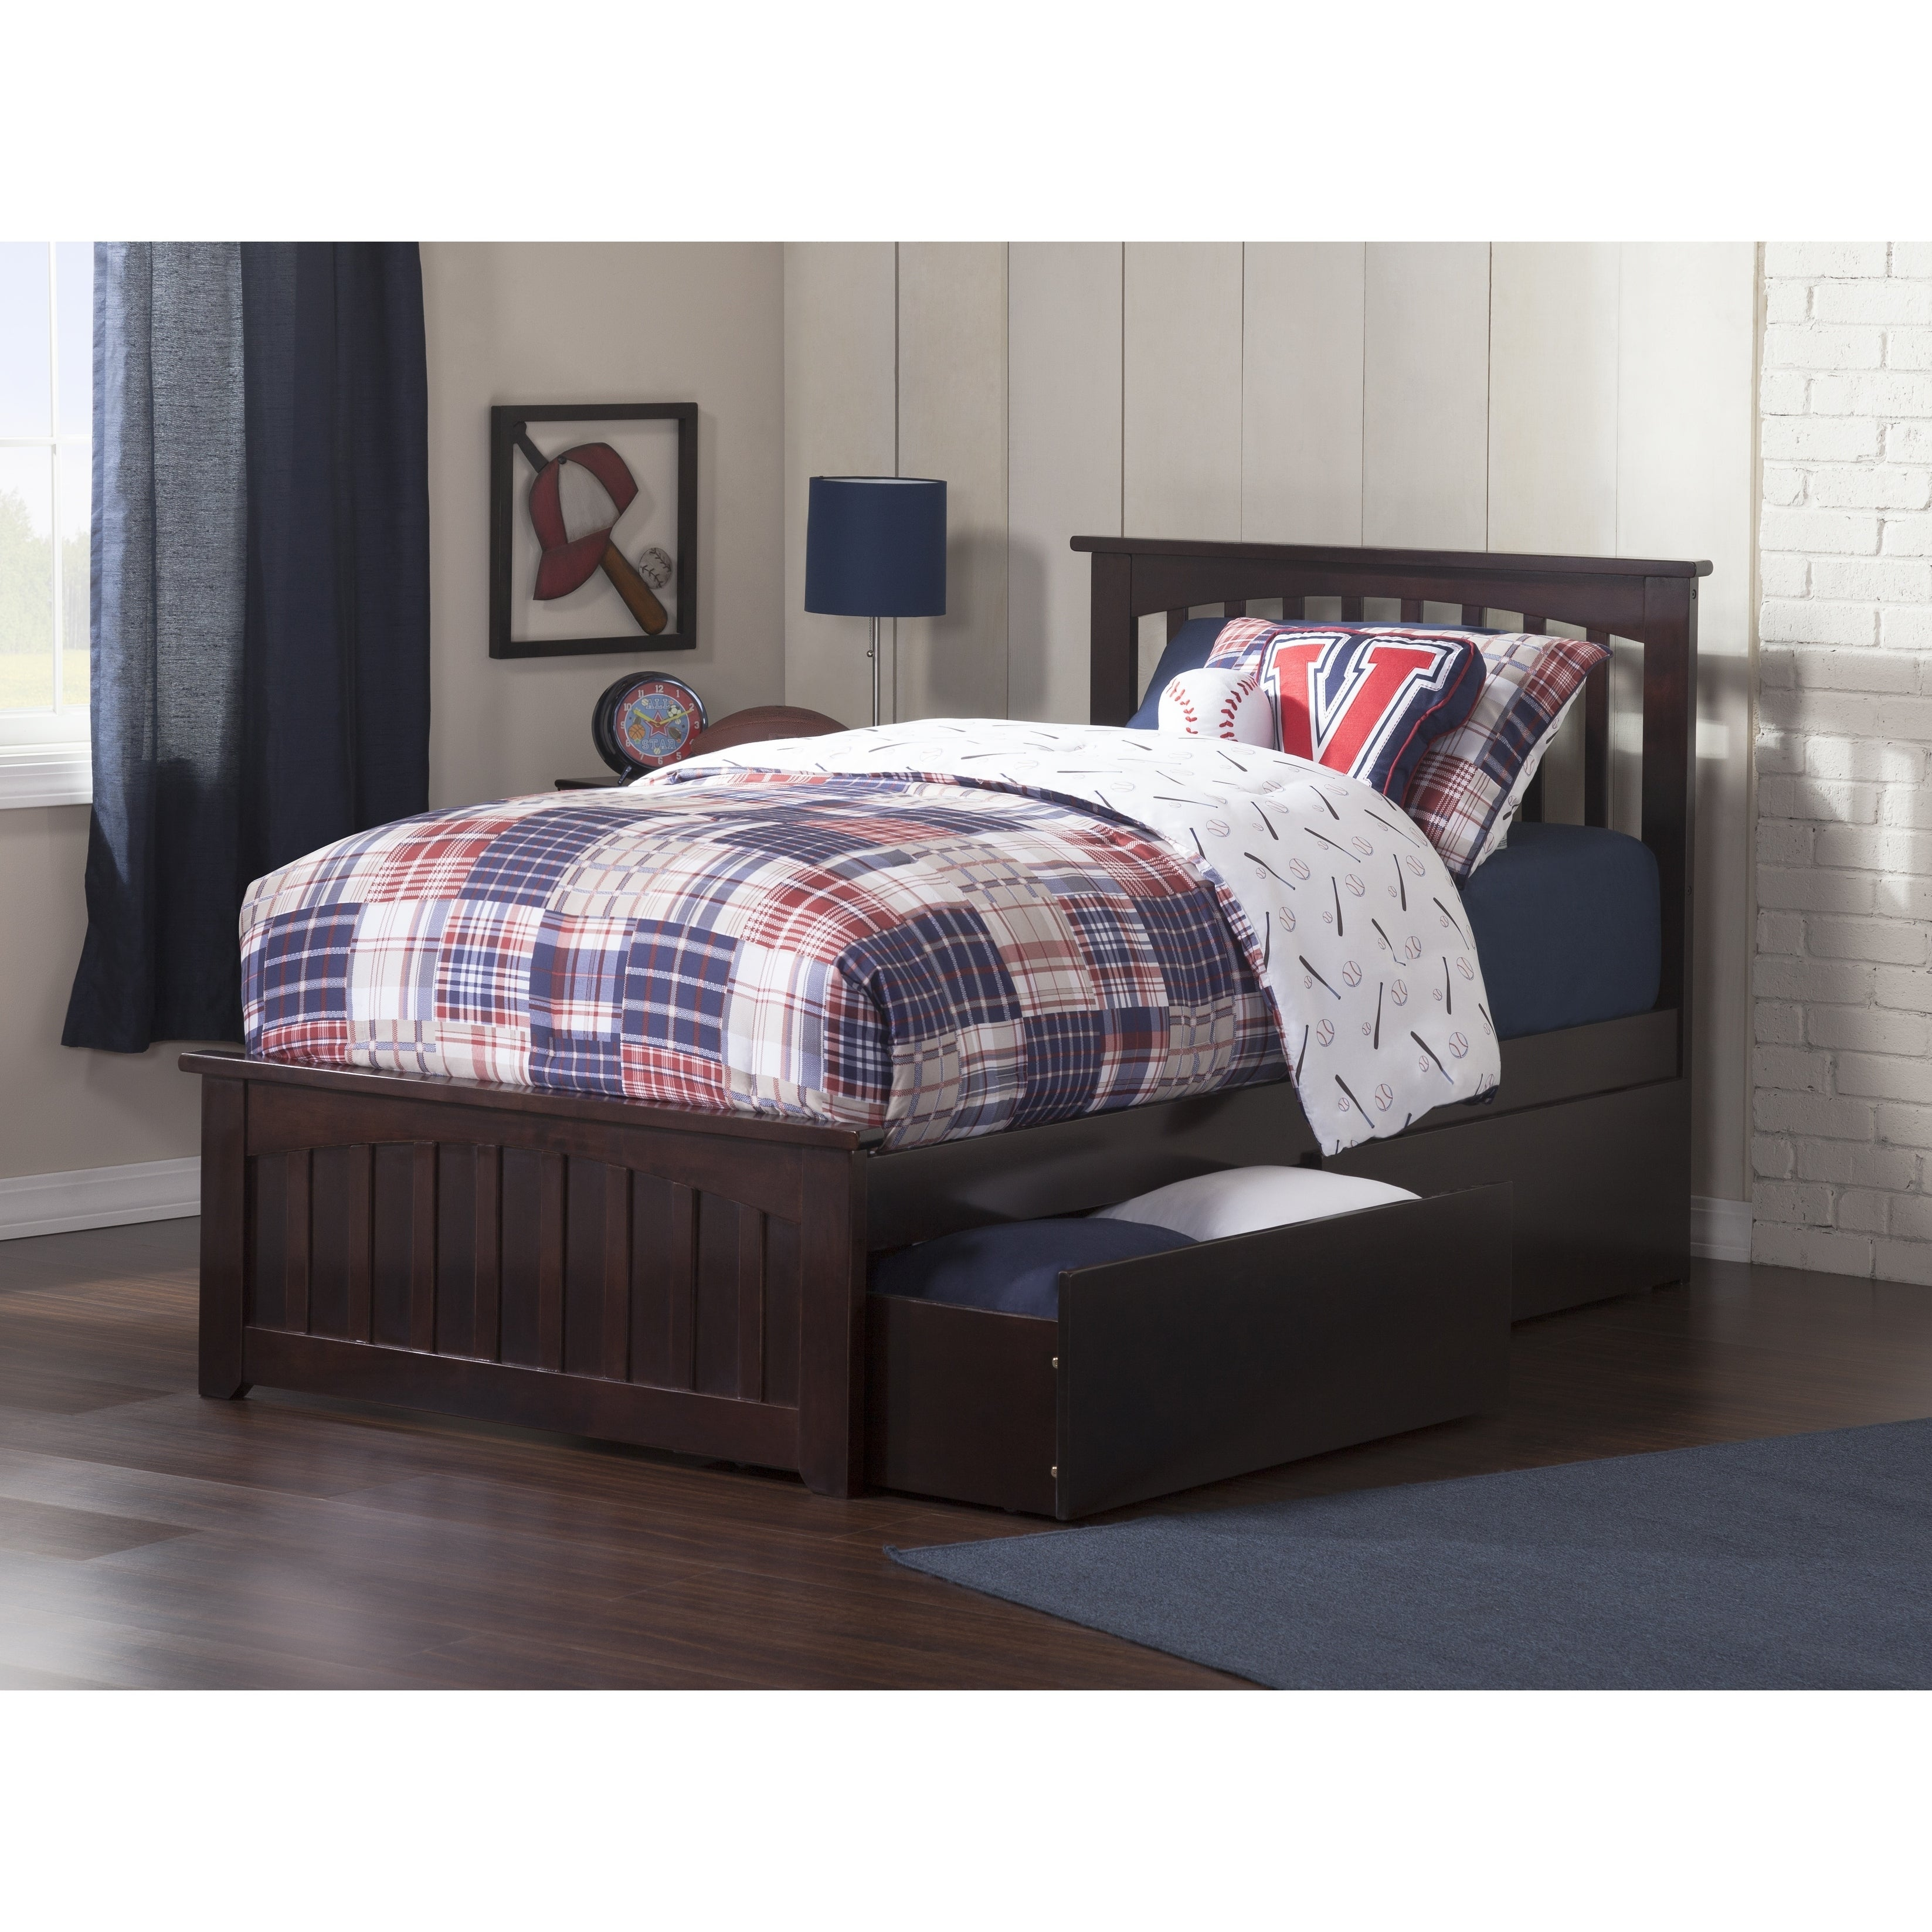 Mission Twin Platform Bed With Matching Foot Board 2 Urban Drawers In Espresso